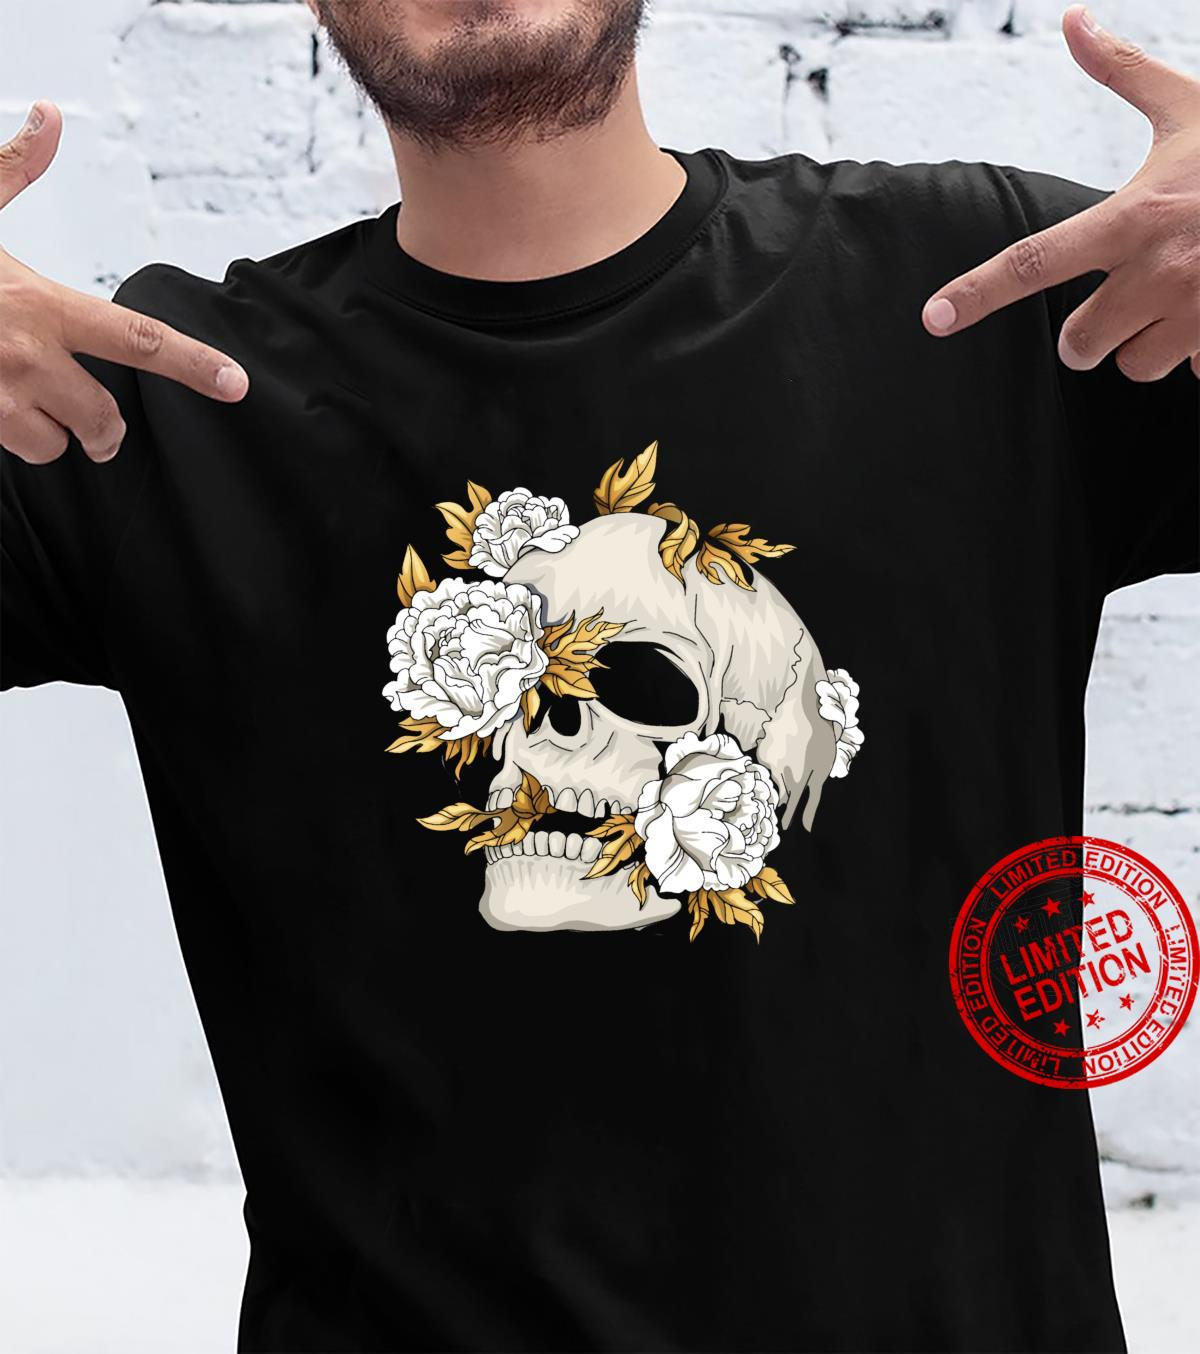 Skull Flowers Goth Gothic Occult Wicca Witchcore Witchcraft Shirt